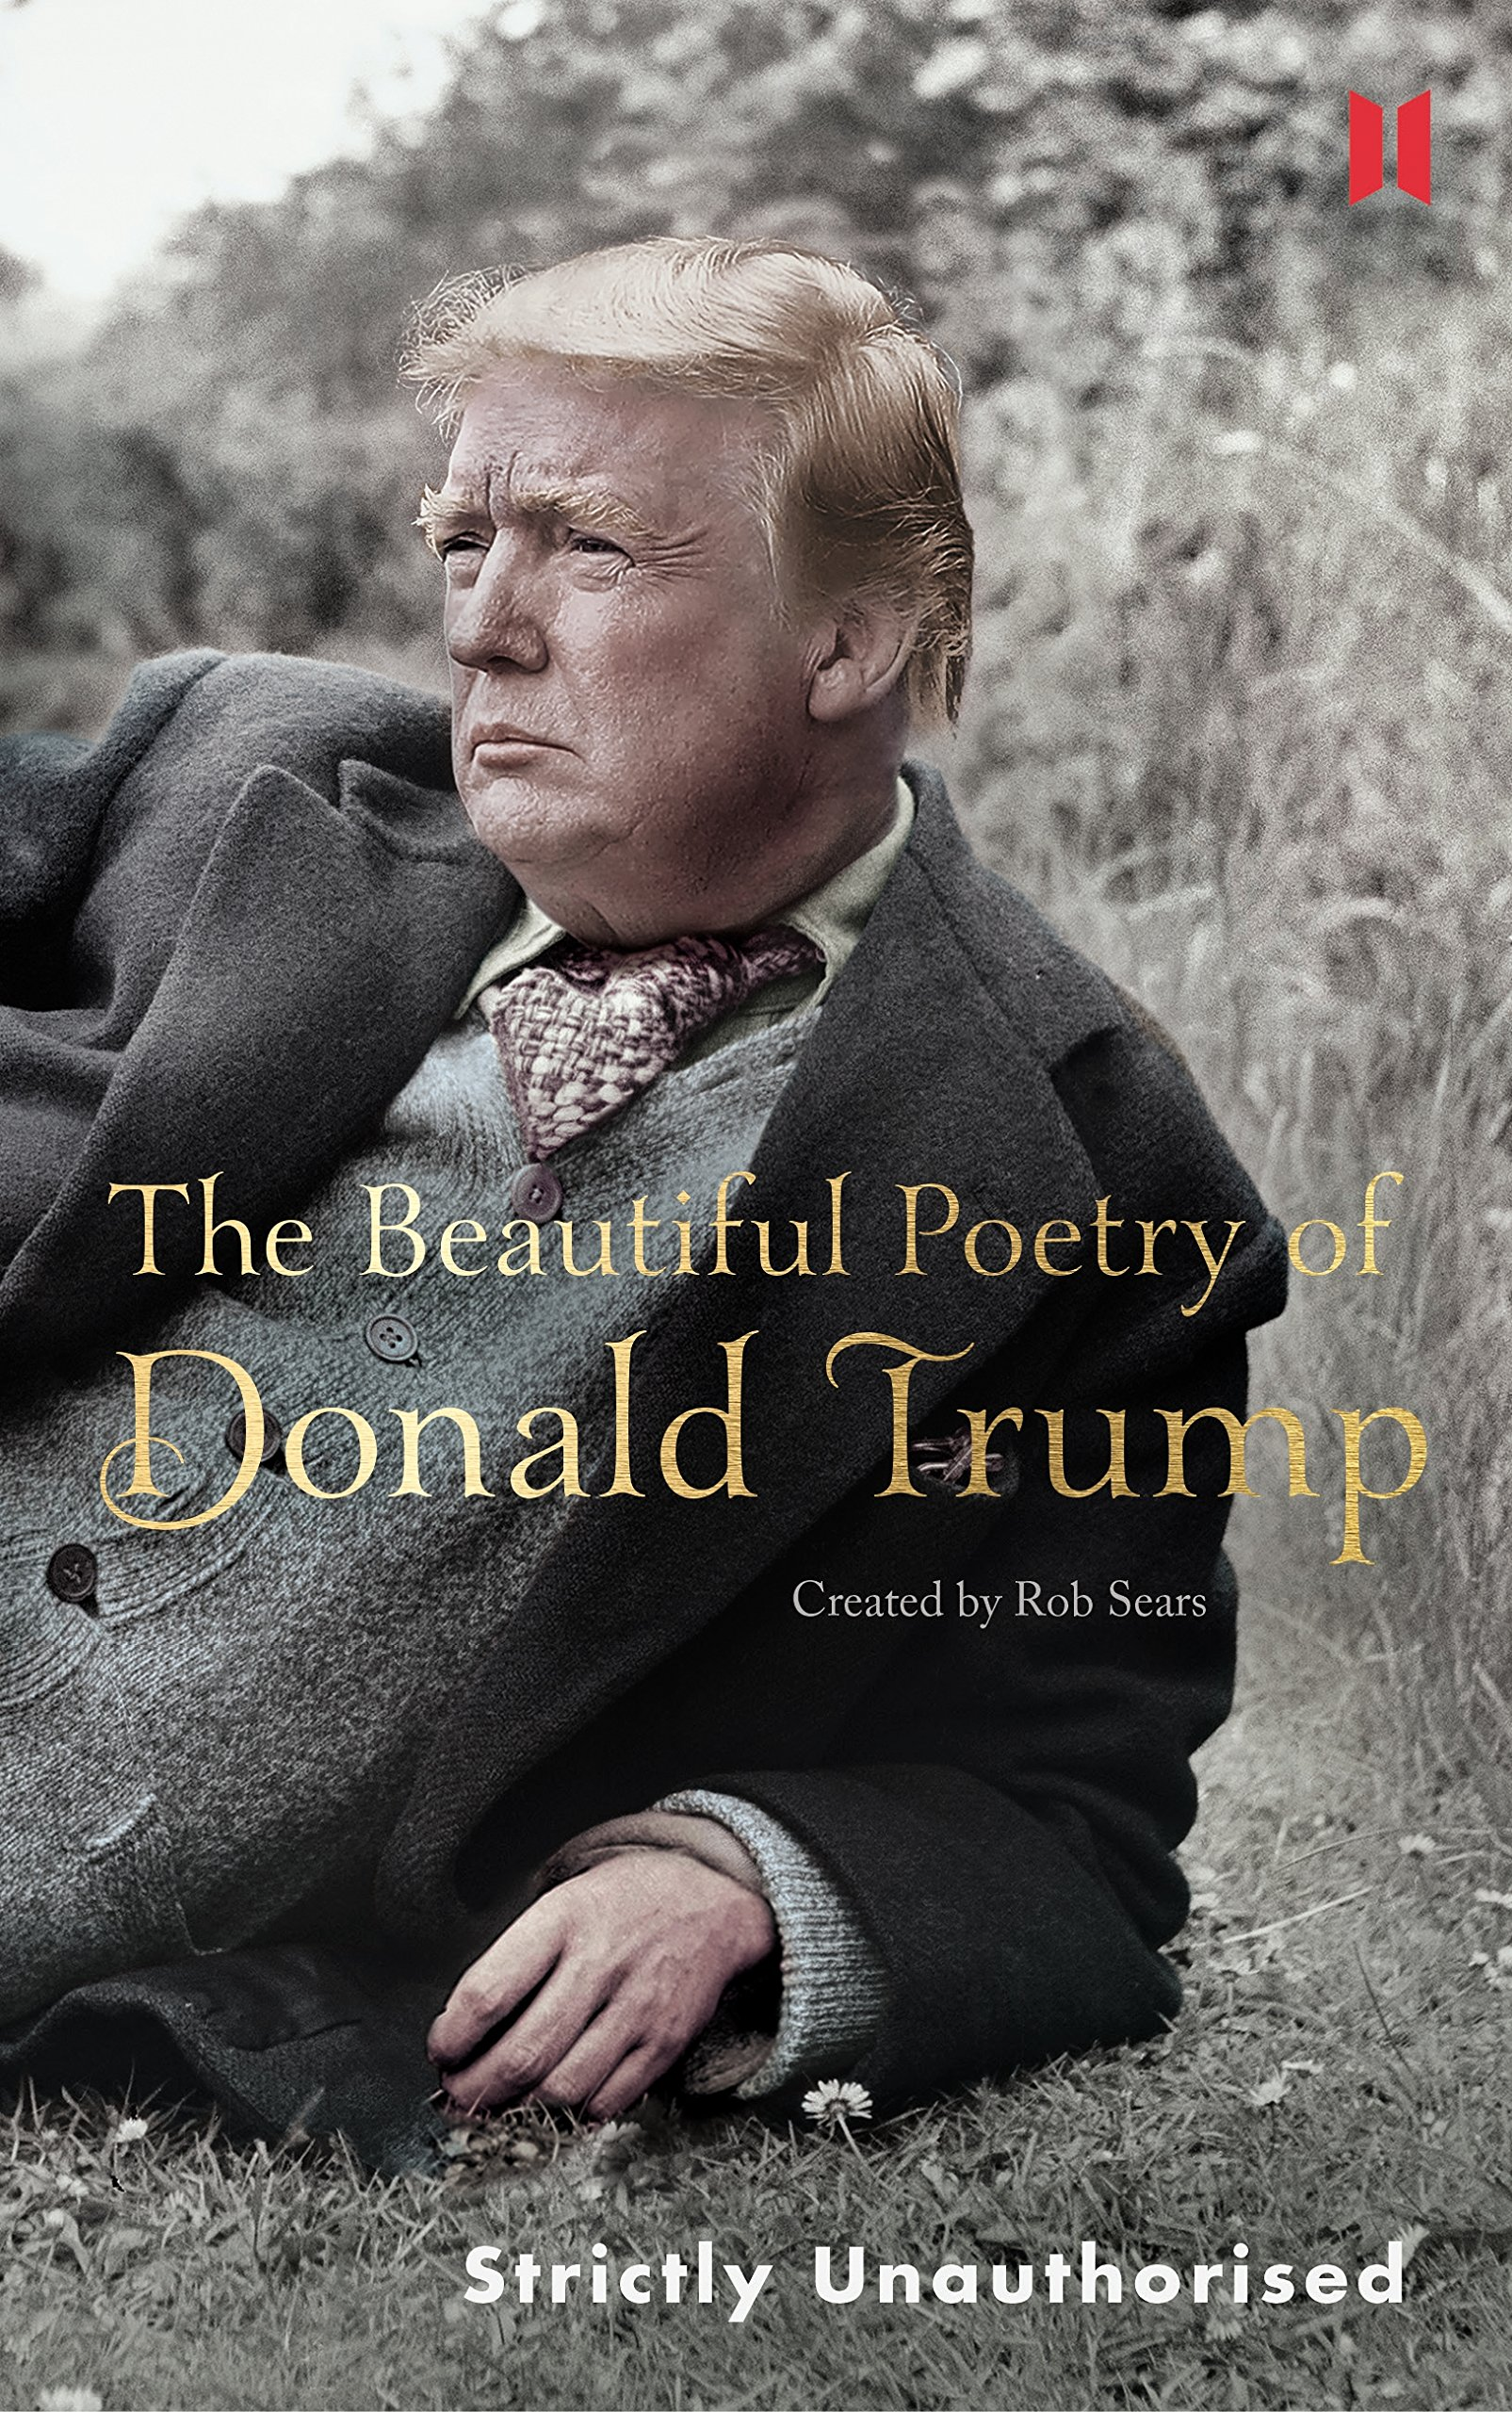 The Beautiful Poetry Of Donald Trump Canons Band 8 Amazonde Rob Sears Fremdsprachige Bucher